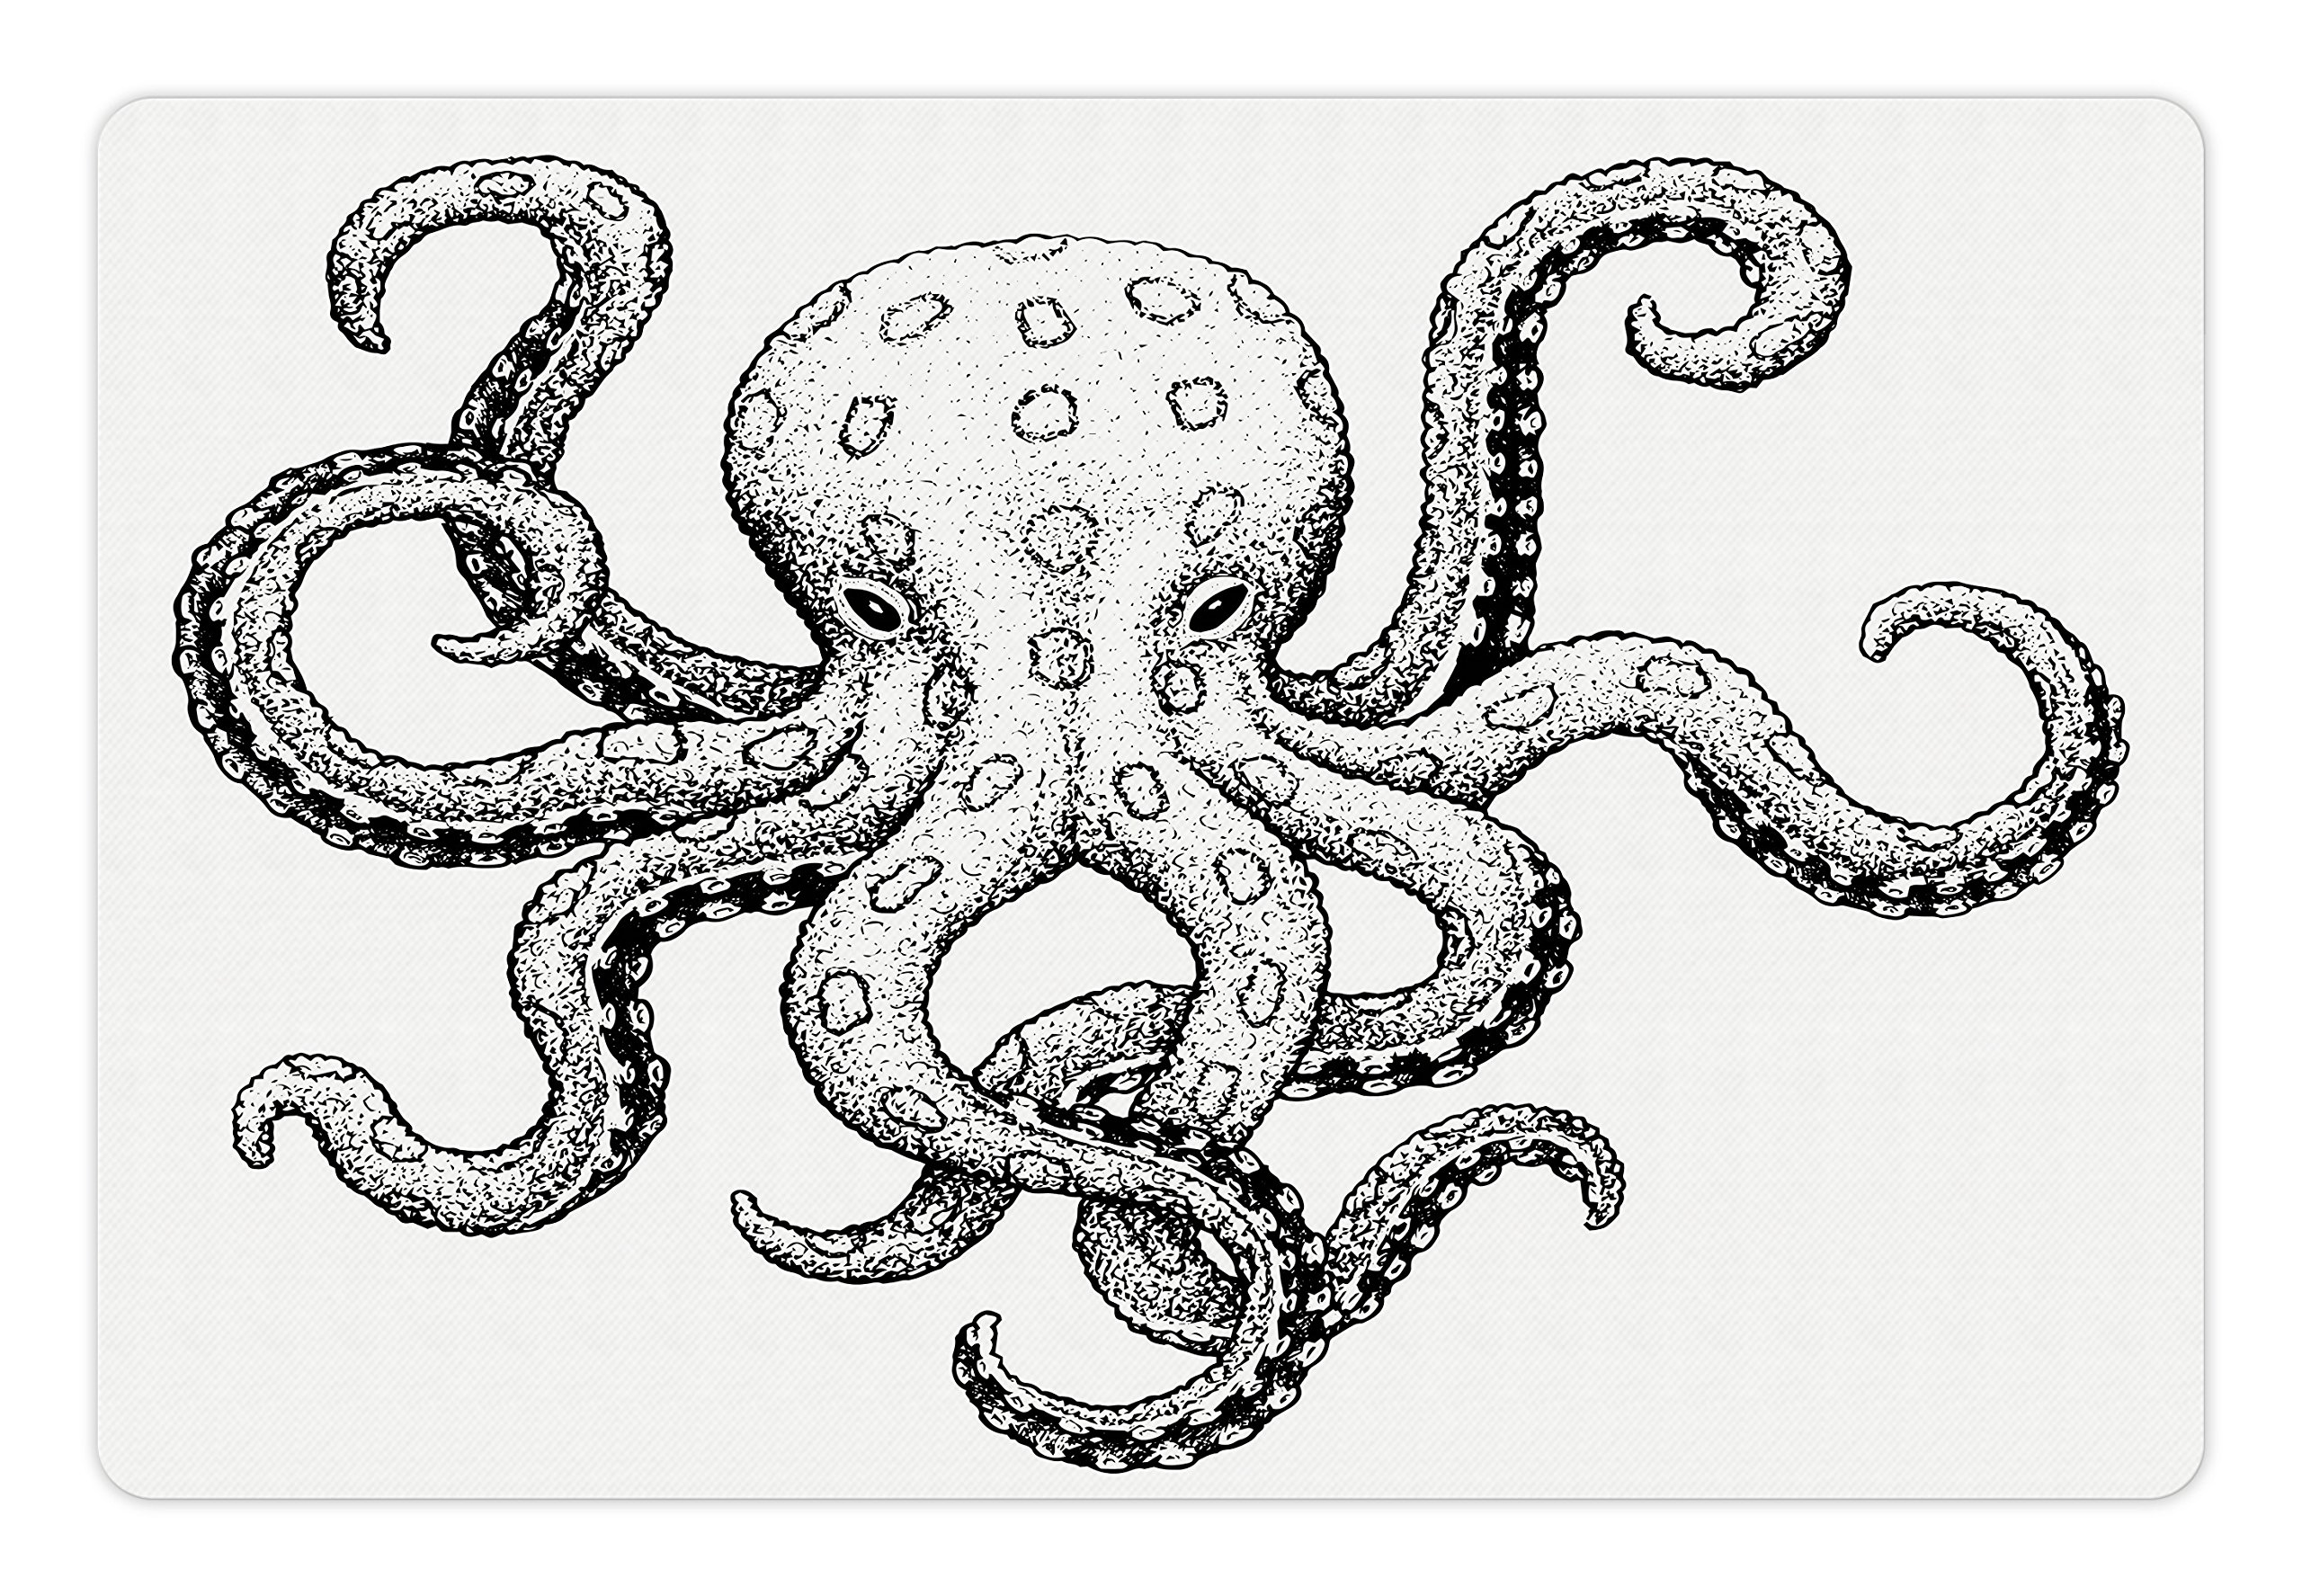 Ambesonne Octopus Pet Mat for Food and Water, Classic Drawn Ink Illustration Wild Marine Animal with Swirling Tentacles, Rectangle Non-Slip Rubber Mat for Dogs and Cats, Black and White